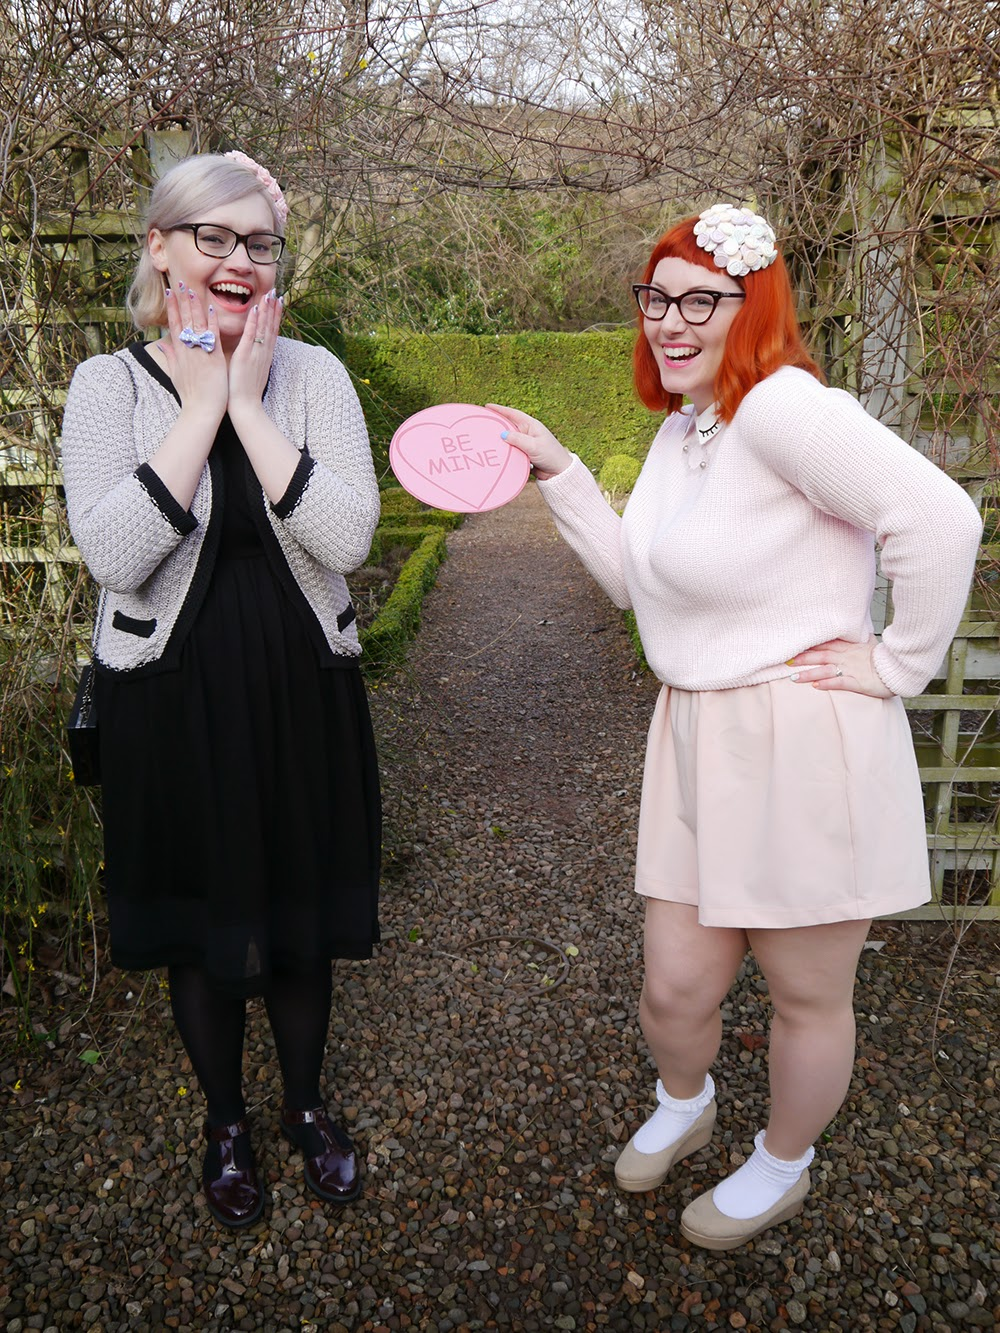 Valentine, Valentine's Day, Love Heart sweets, Sweet Inspired Outfit. Valentine's Day style, Valentine outfit, All pink outfit inspiration, She Inside winking jumper, Wear Eponymous pink skirt, H&M nude flatform shoes, Topshop frilly socks, Charcot necklace, giant lovehearts, Lovehearts headpiece, sweet hat, sweetie fascinator, Scottish Bloggers, Wardrobe Conversations, Galentines, BFF, Best Friends